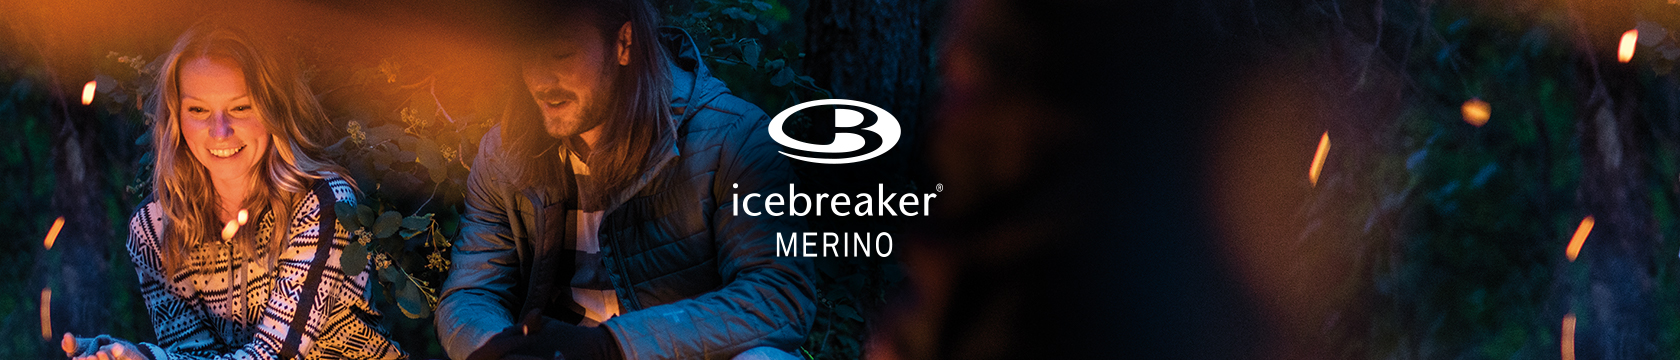 People sat around a campire wearing Icebreaker Merino apparel.